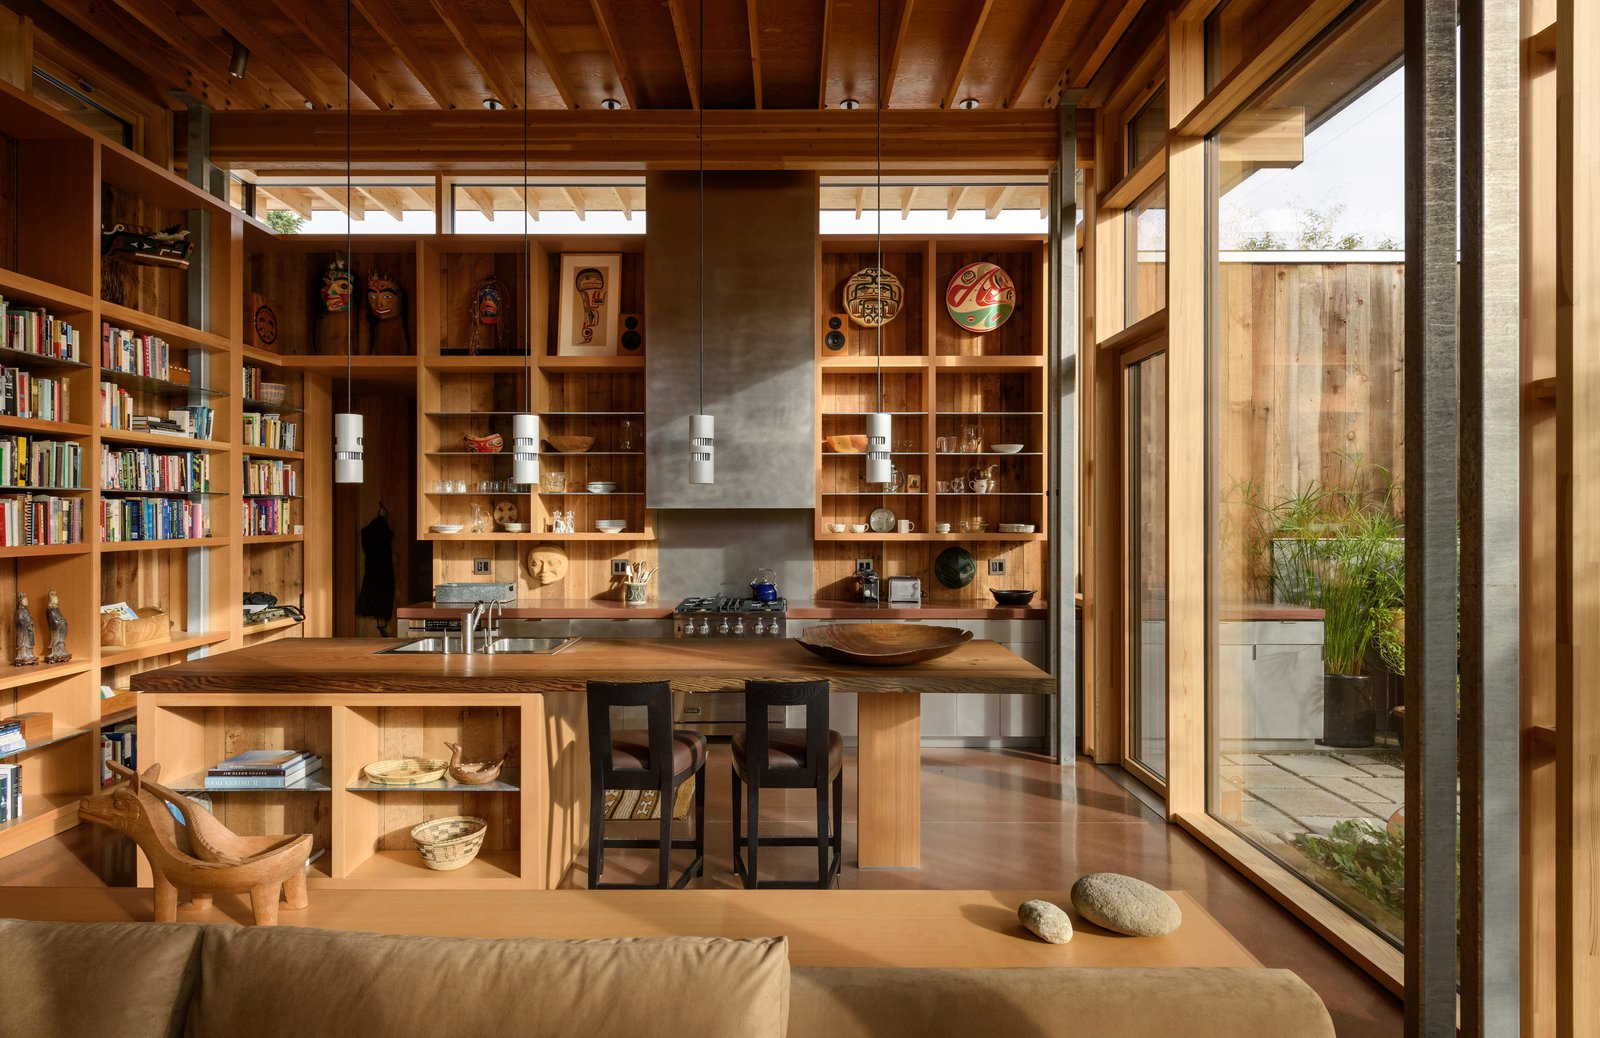 Kitchen, Wood Counter, and Granite Counter City Cabin | Olson Kundig  Photo 6 of 13 in Immersed in Nature, This City Cabin Targets Net-Zero Energy from City Cabin